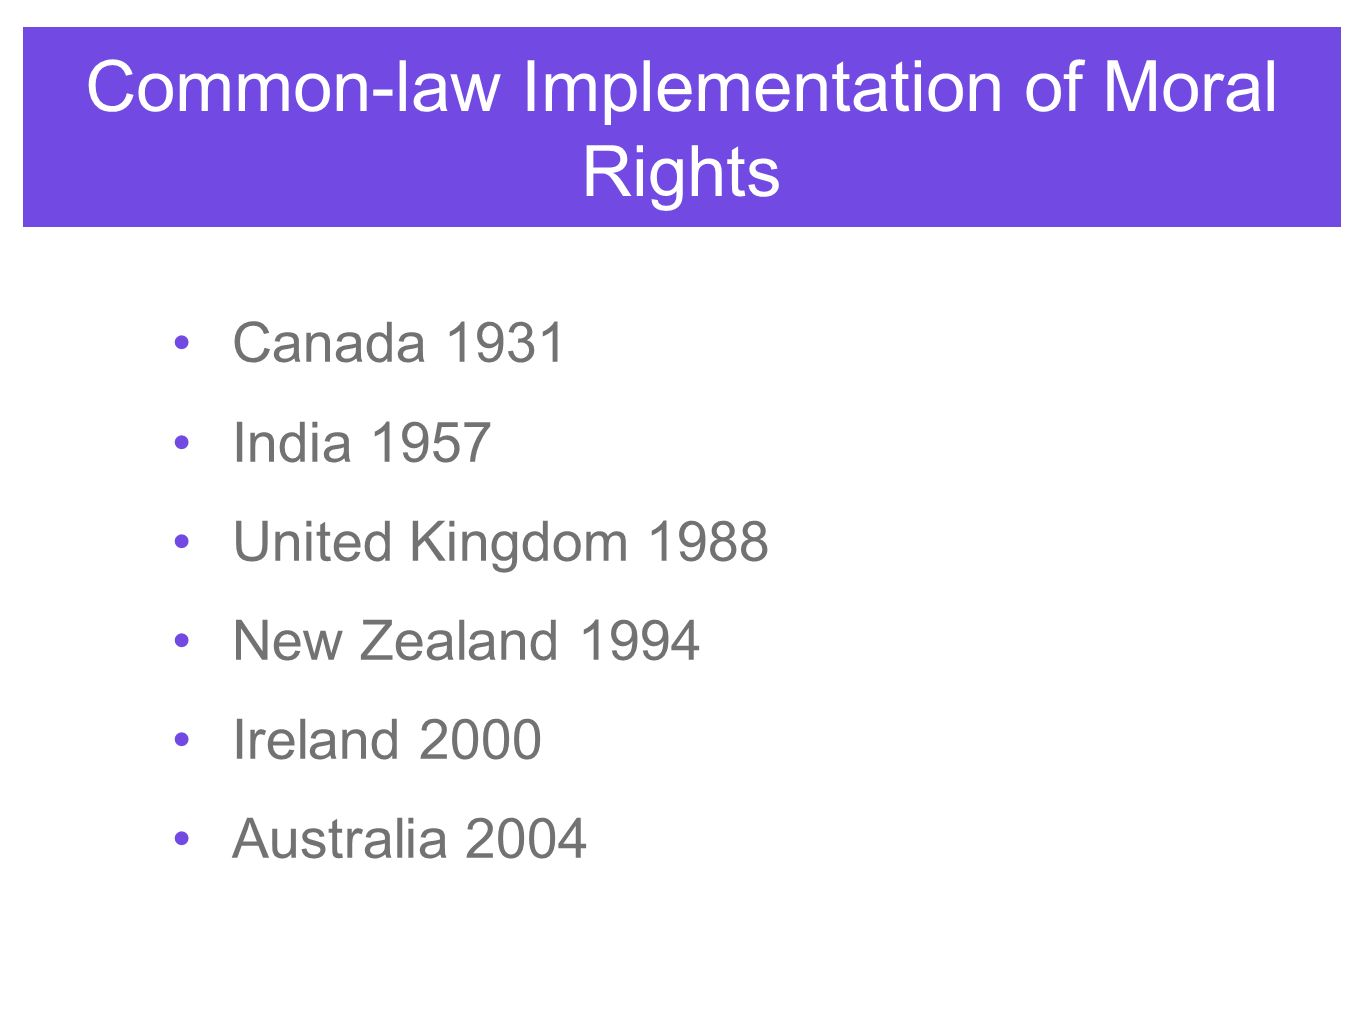 Common-law Implementation of Moral Rights Canada 1931 India 1957 United Kingdom 1988 New Zealand 1994 Ireland 2000 Australia 2004